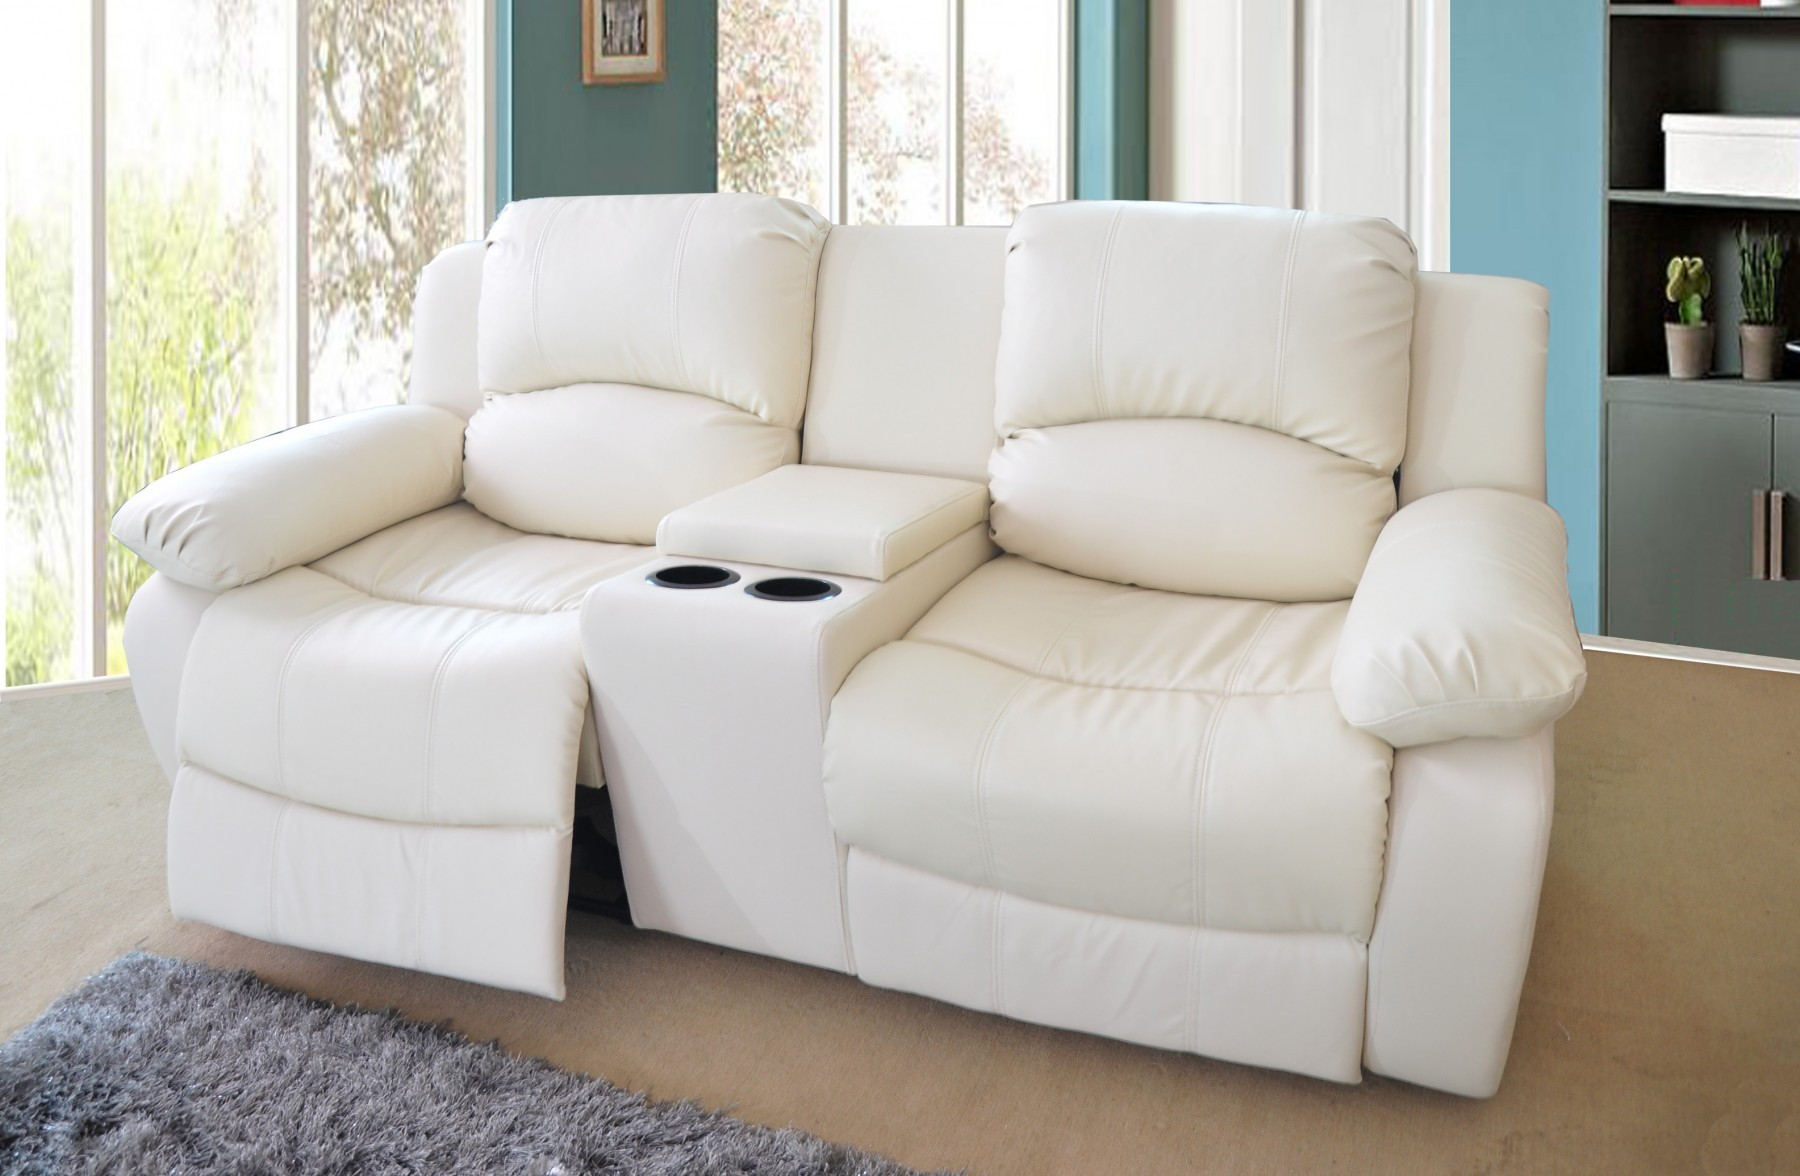 2 Seater Recliner sofa Fantastic 2 Seater Bonded Leather Recliner sofa with Drinks Console Cream Décor